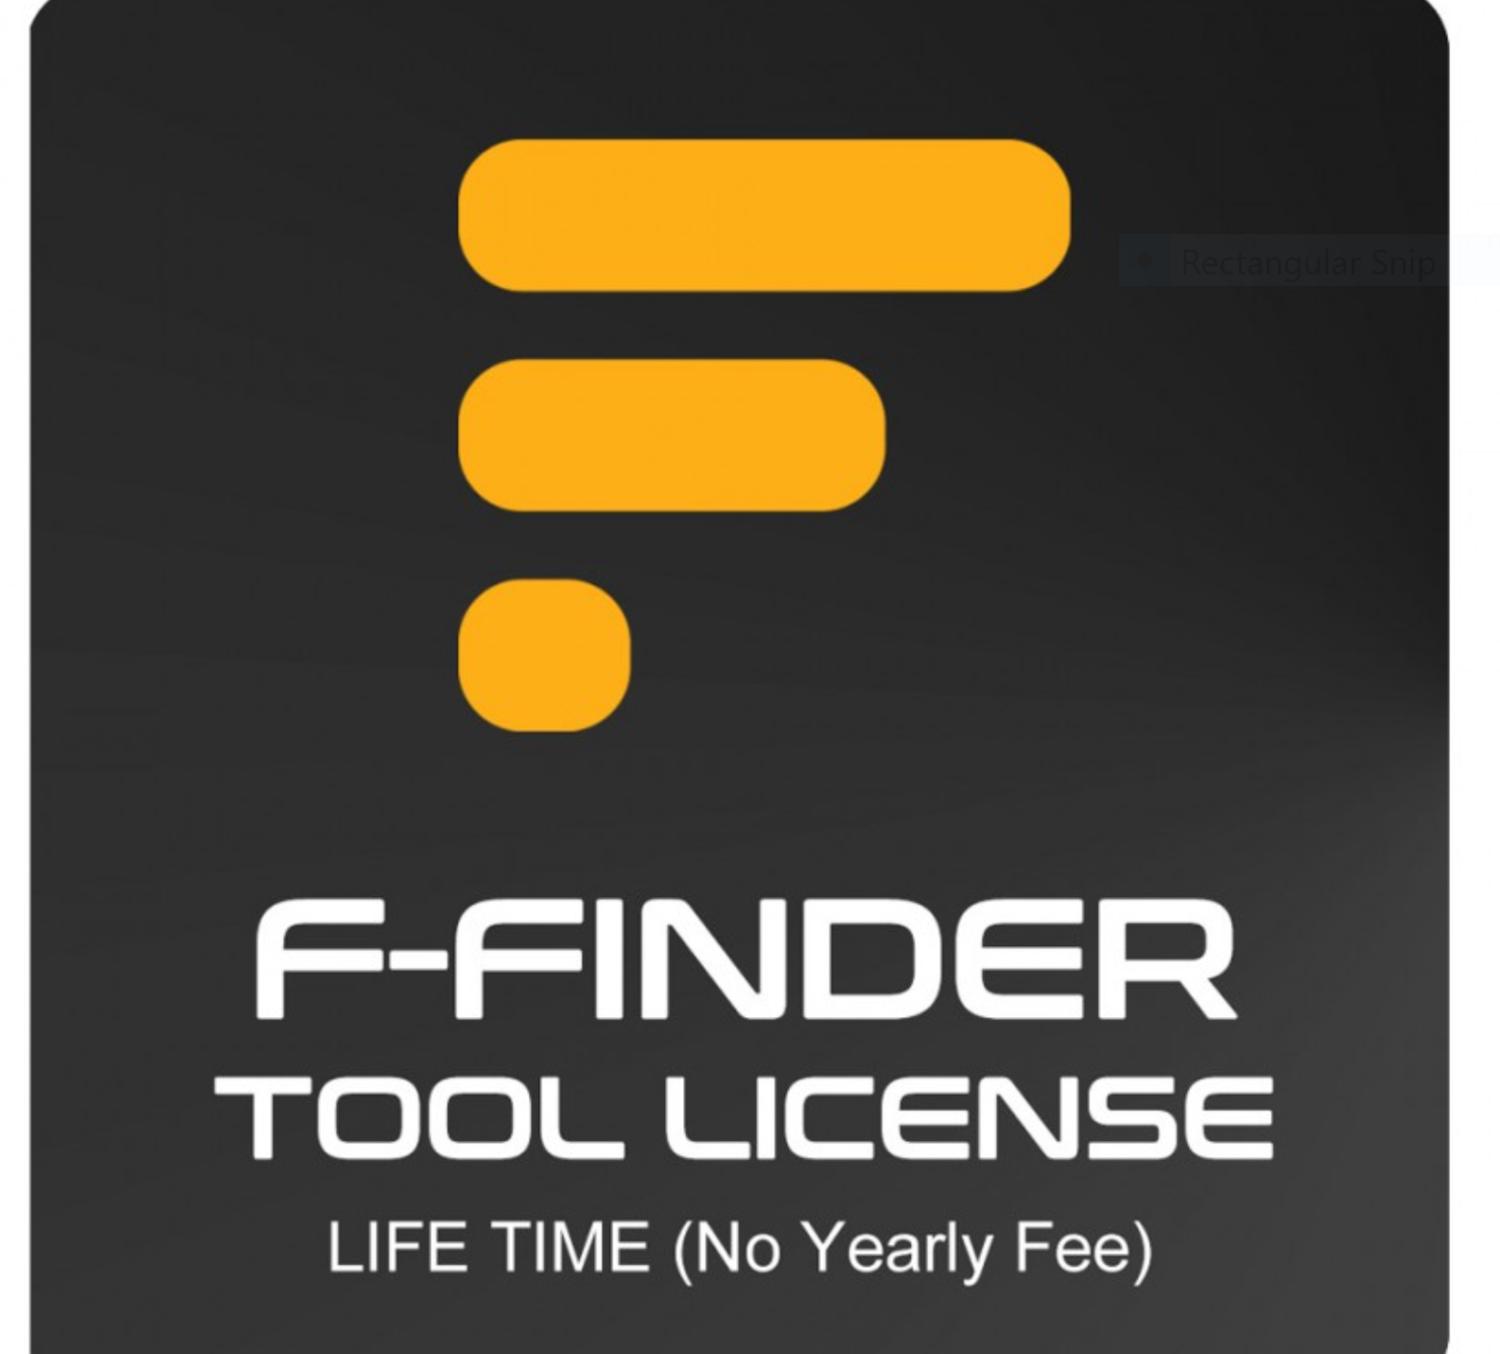 Plz Bro F-Finder Tool License